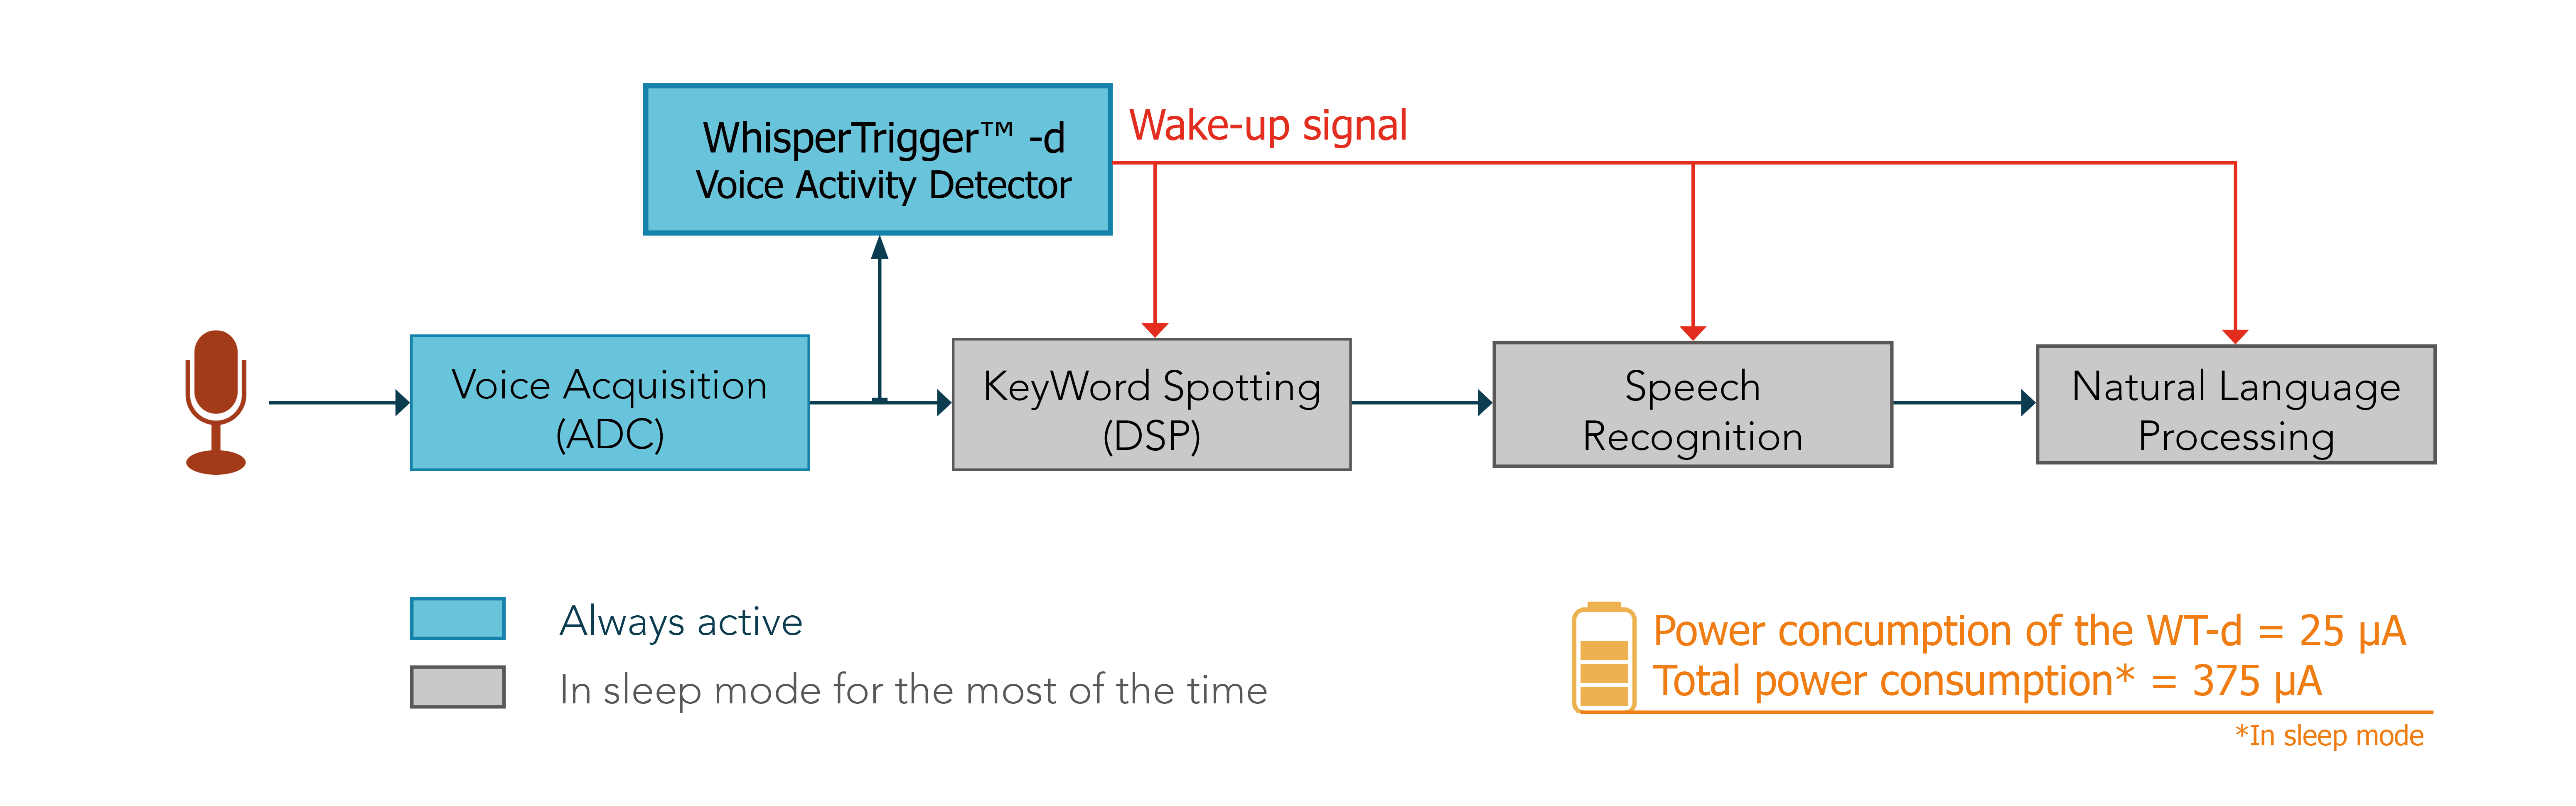 Voice Activity Detection: WhisperTrigger™ and MIWOK benchmark